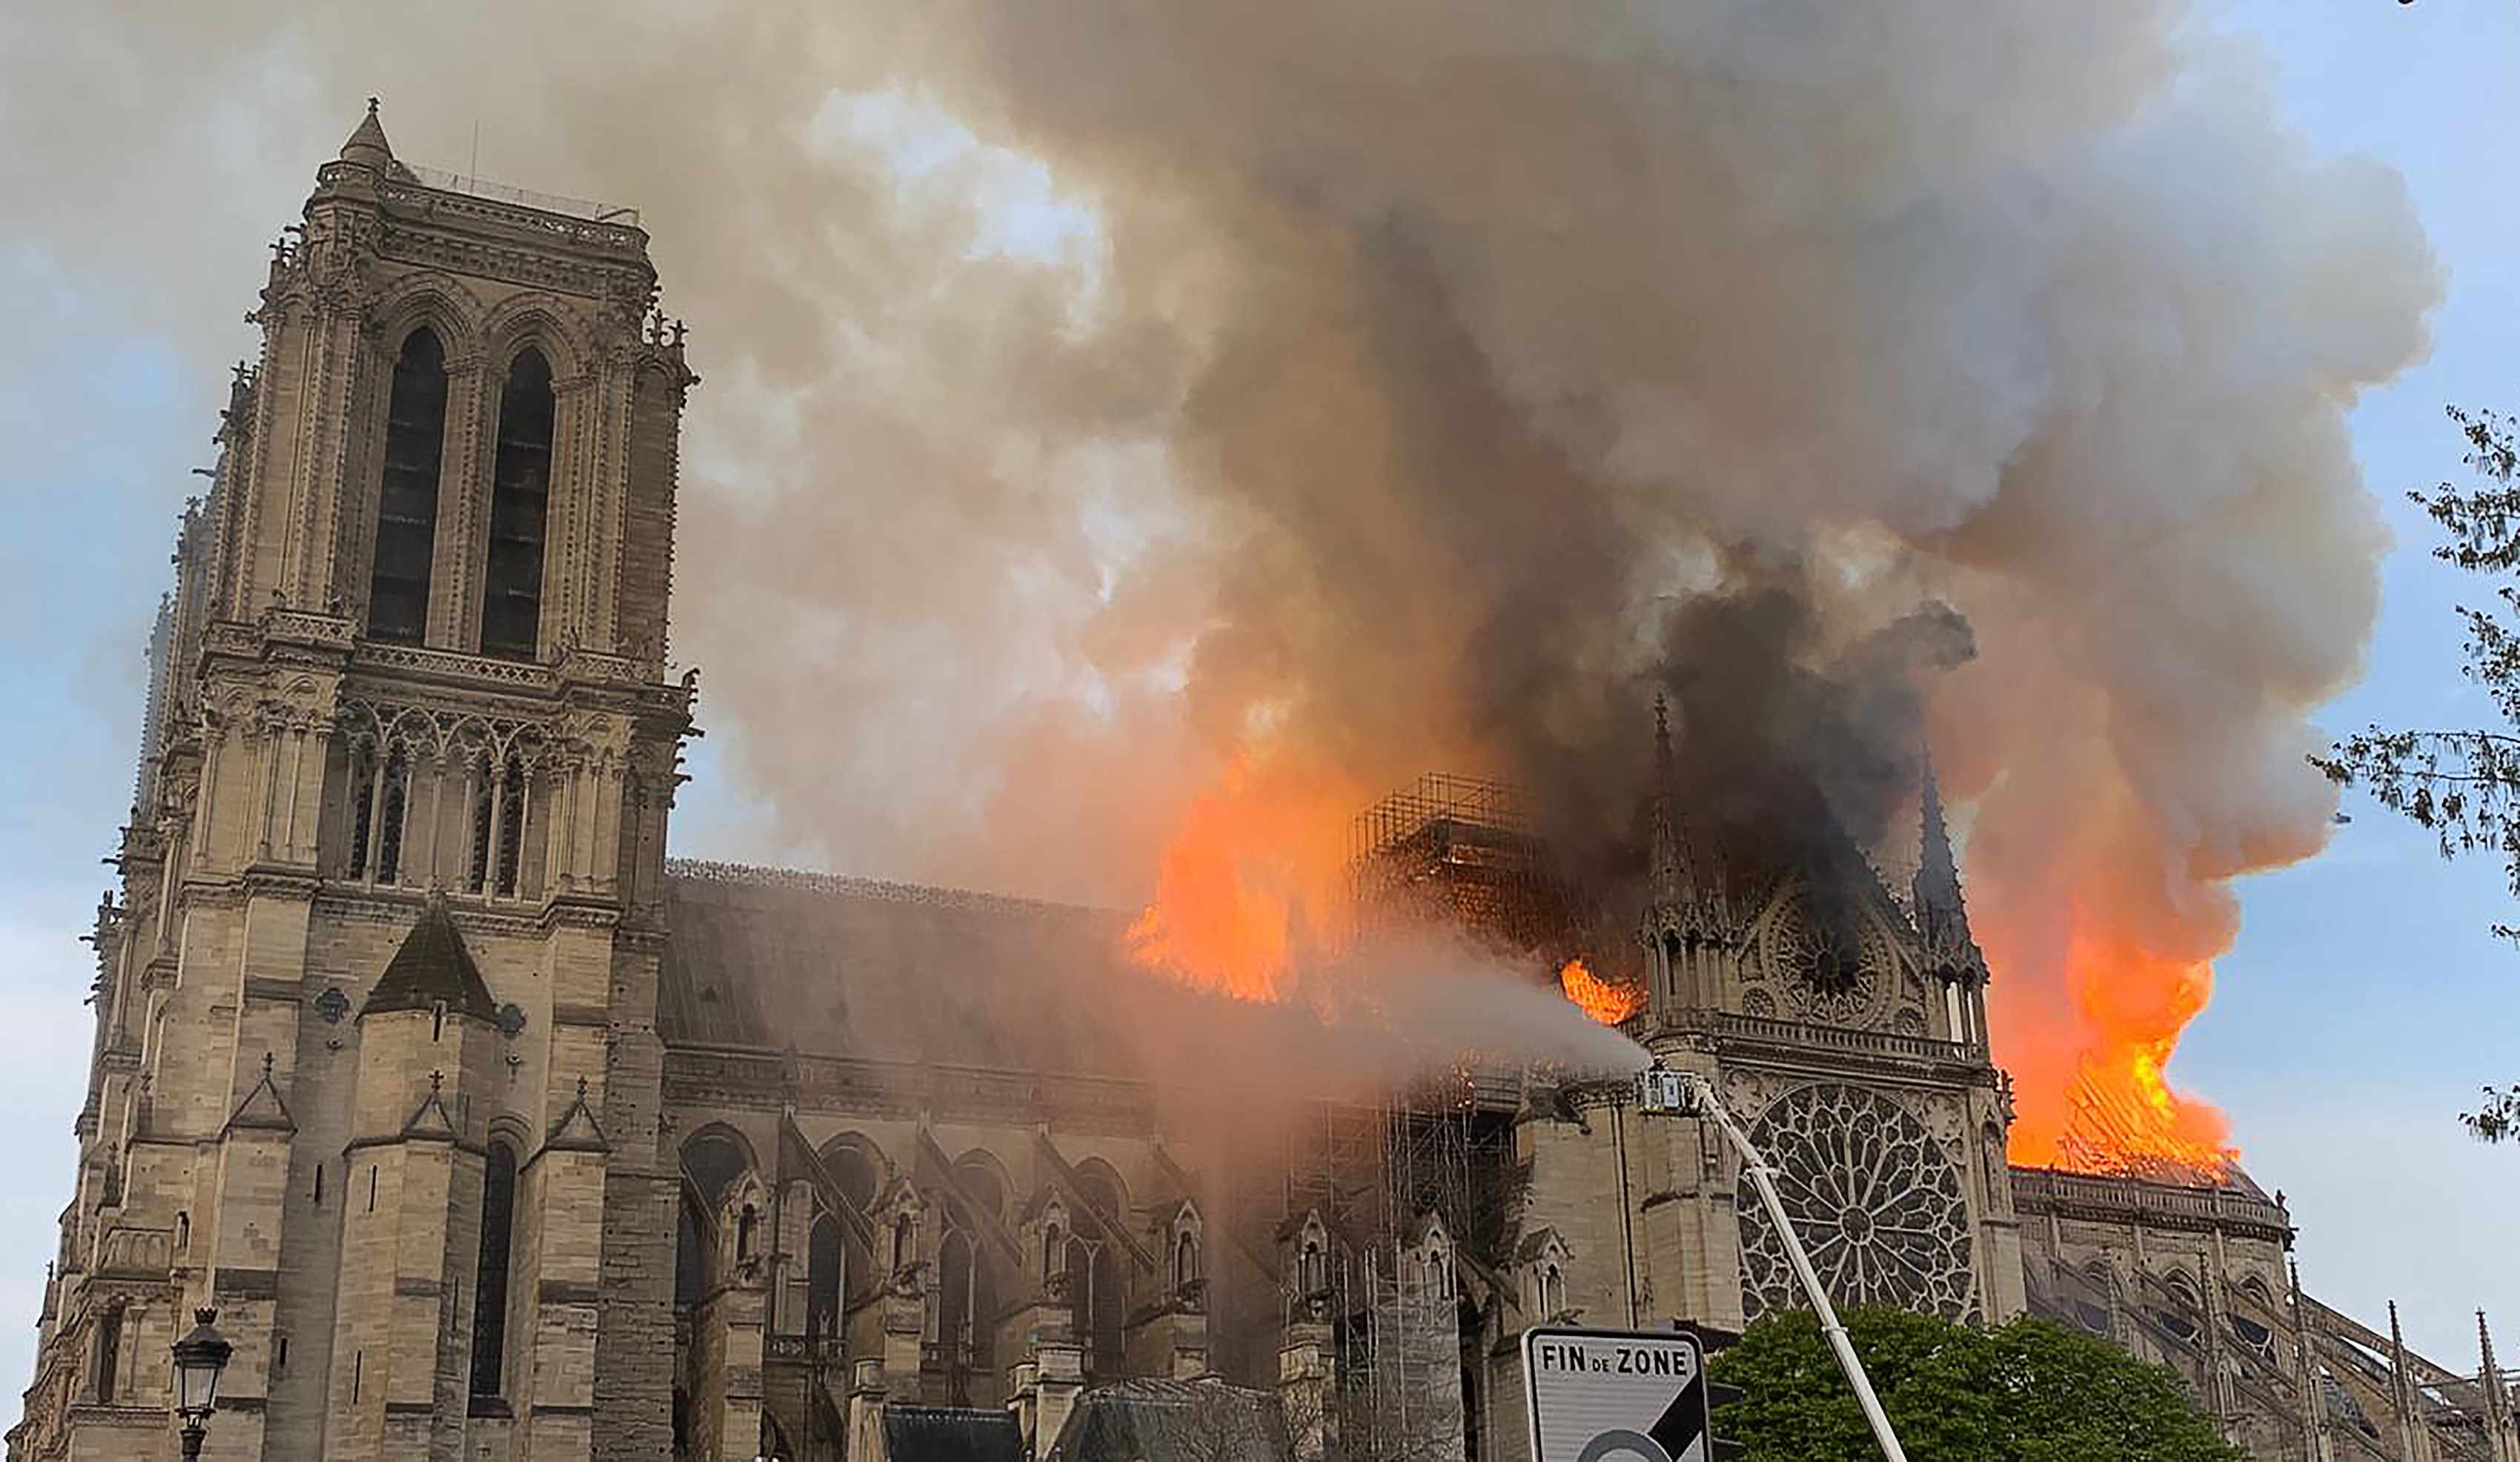 """Flames and smoke are seen billowing from the roof at Notre-Dame cathedral in Paris, 15 April 2019. Yet despite the devastation, the fire is """"not the worst chapter in its 850-year history"""", argues Dr Emily Guerry. (Patrick Anidjar/AFP/Getty Images)"""